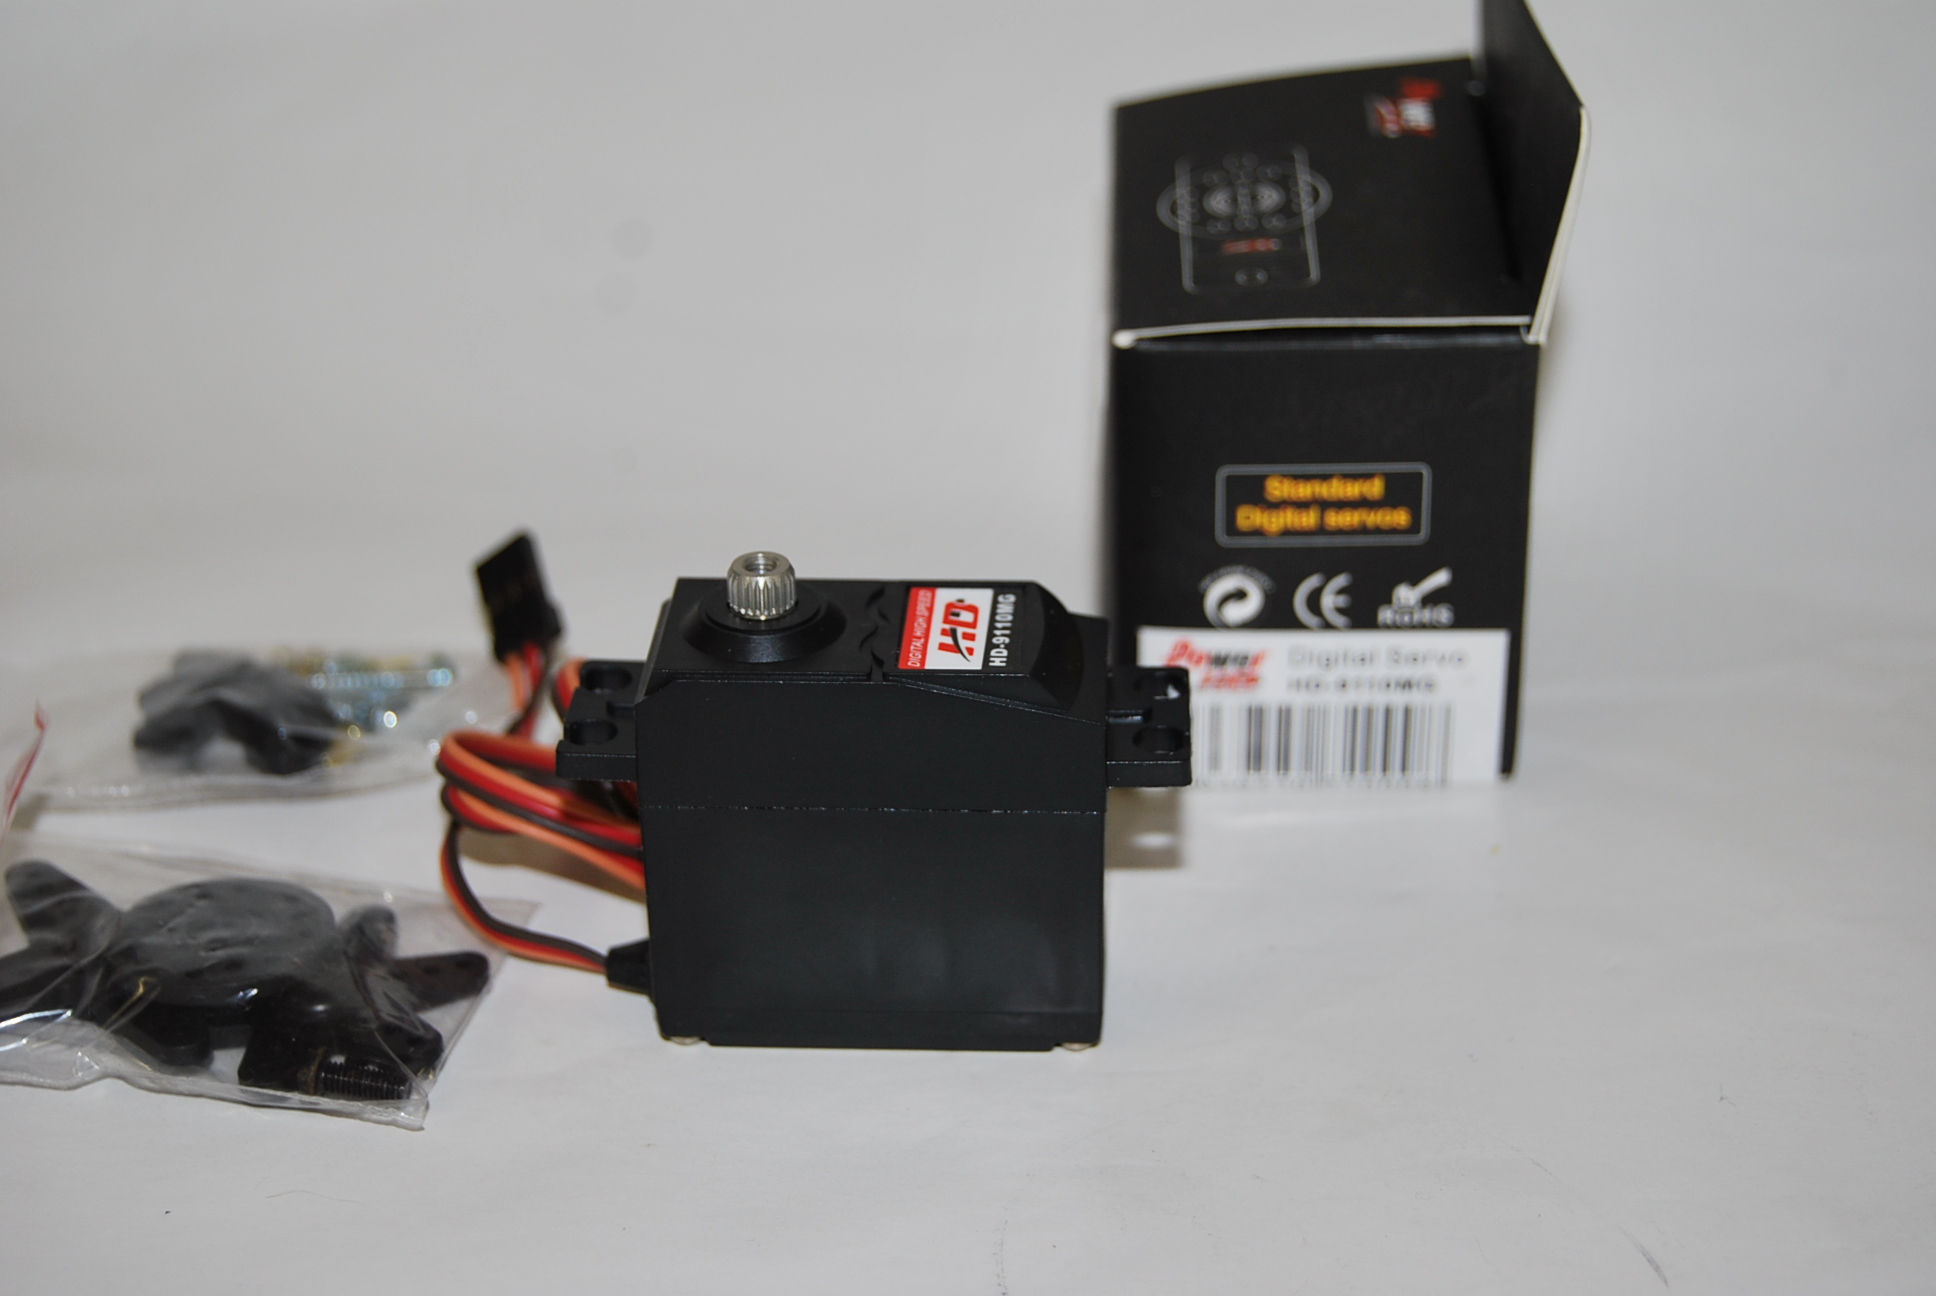 Digital Servos HD-9110MG